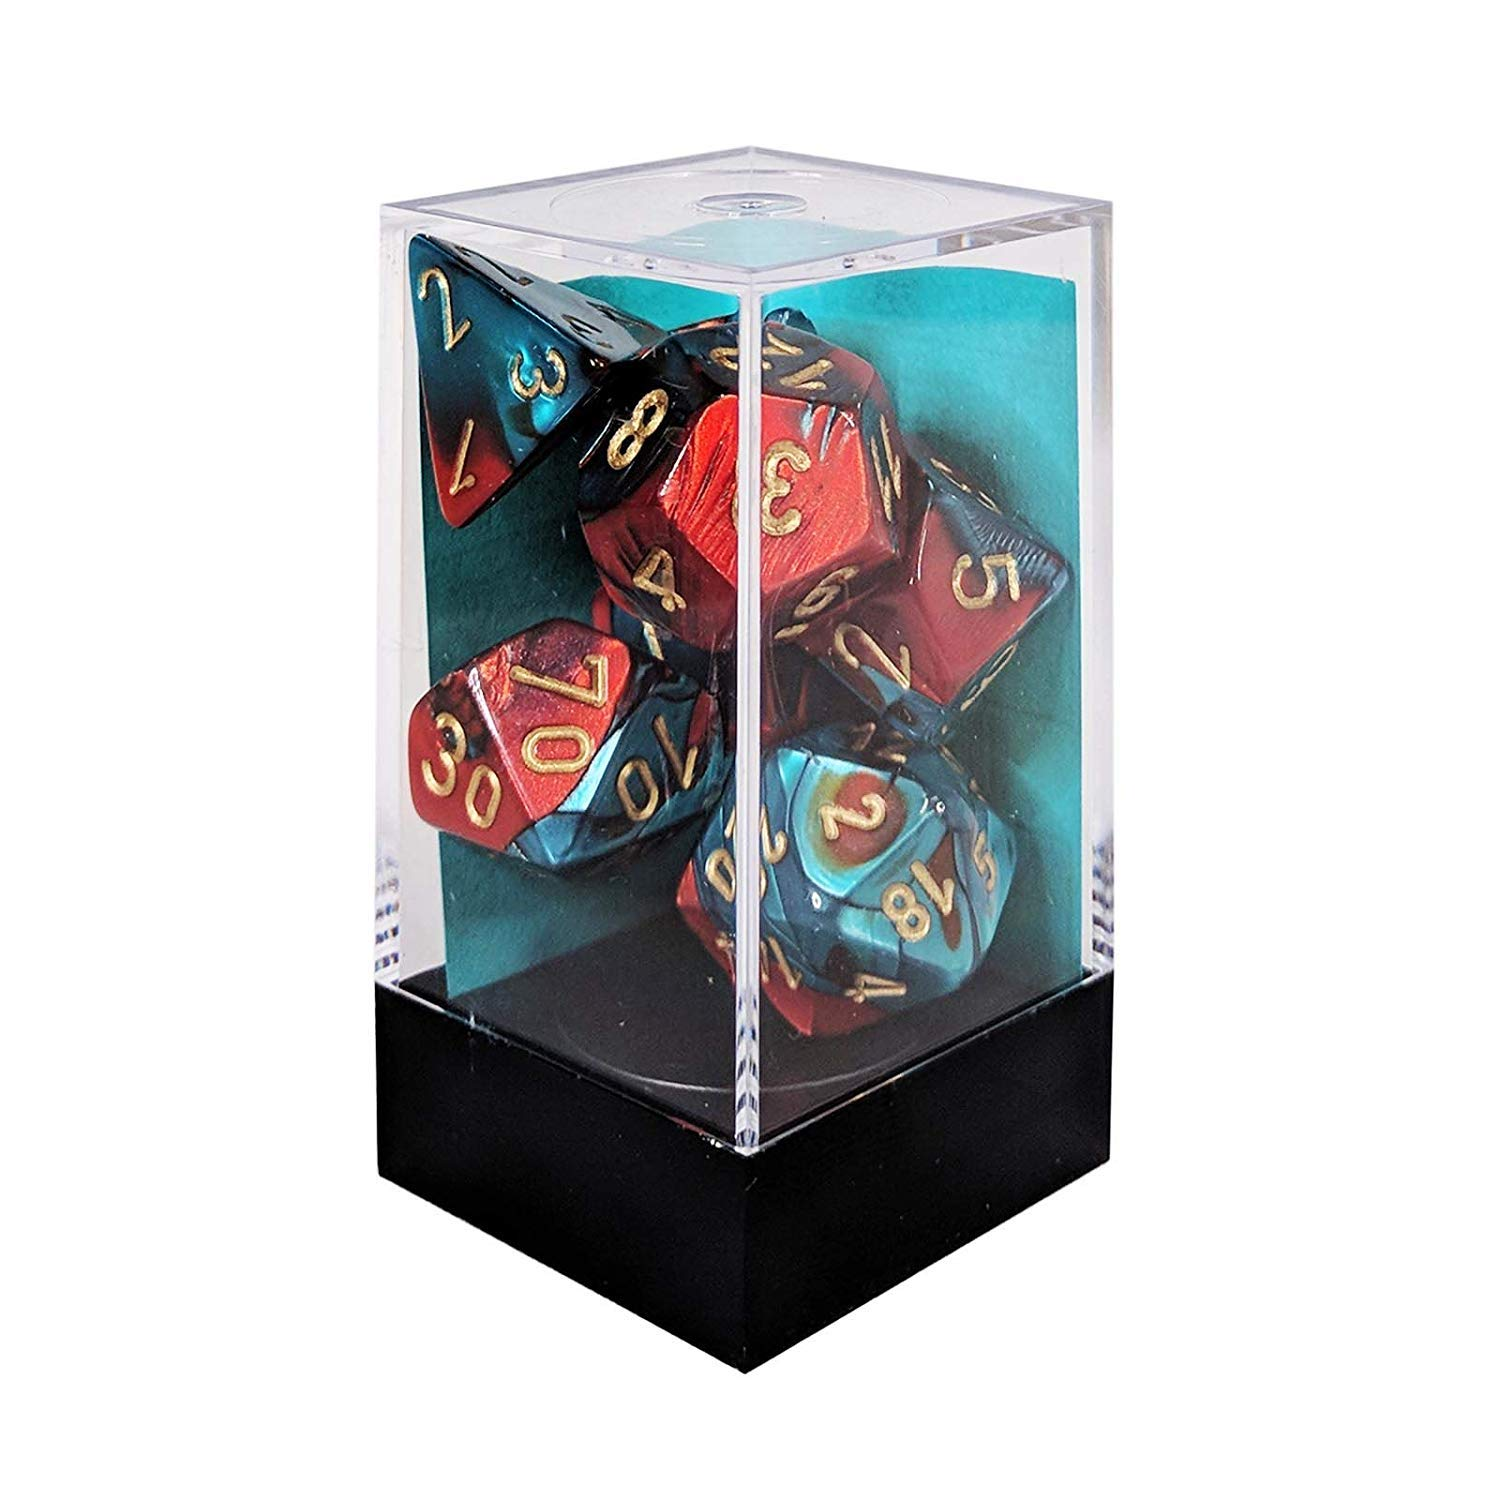 Chessex CHX26462 Dice-Gemini Red-Teal/Gold Set by Chessex